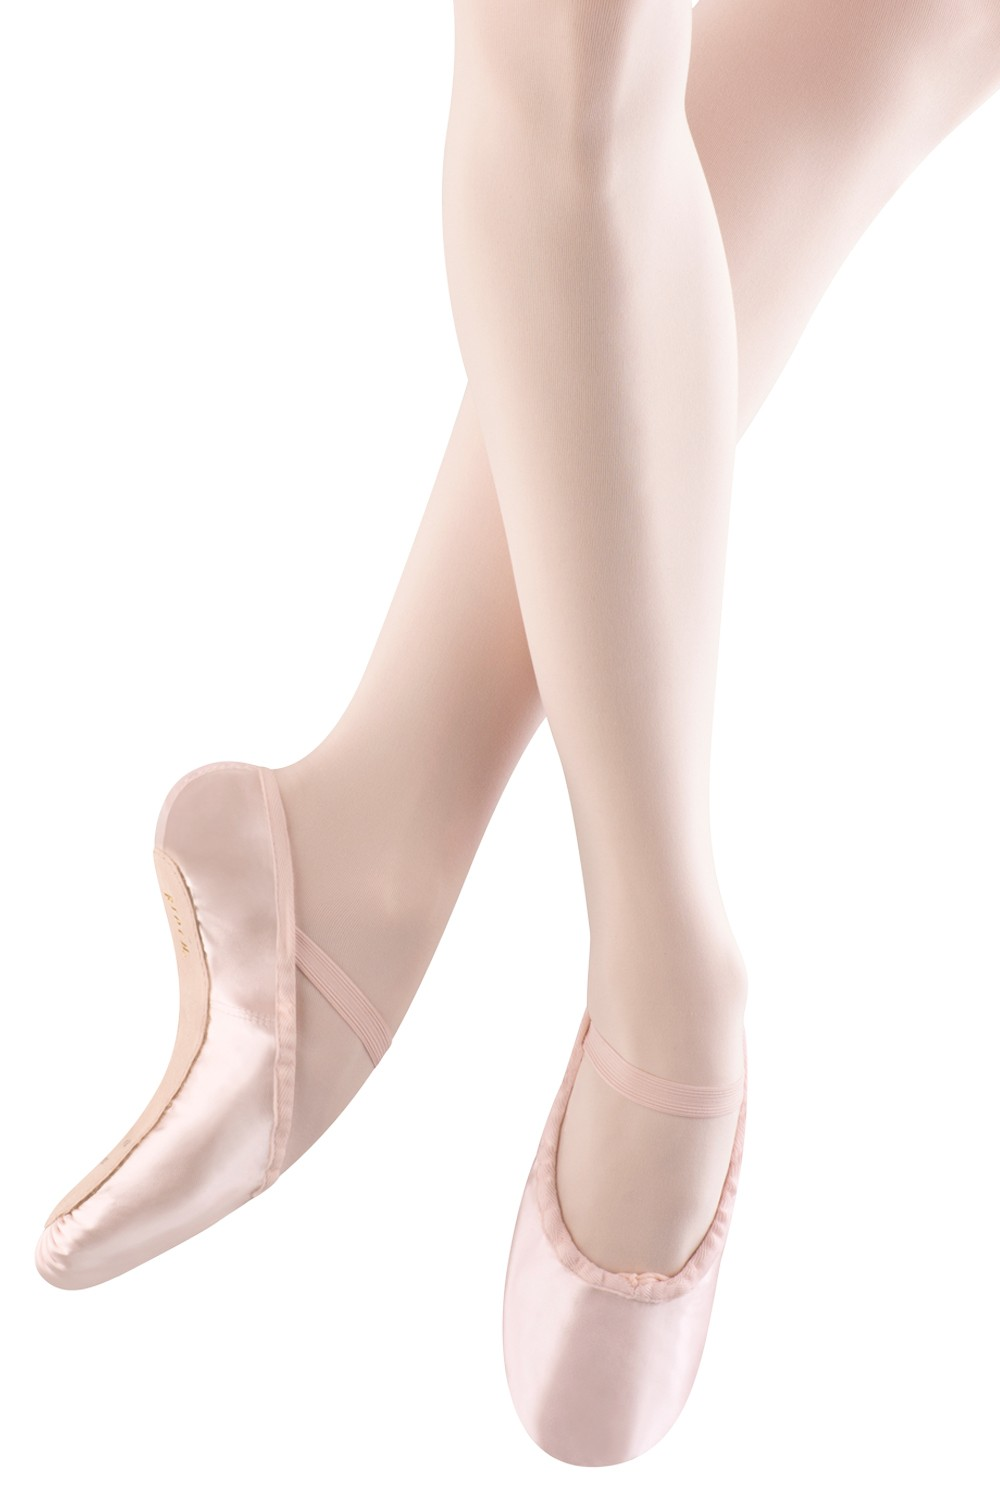 Debut I Satin Women's Ballet Shoes